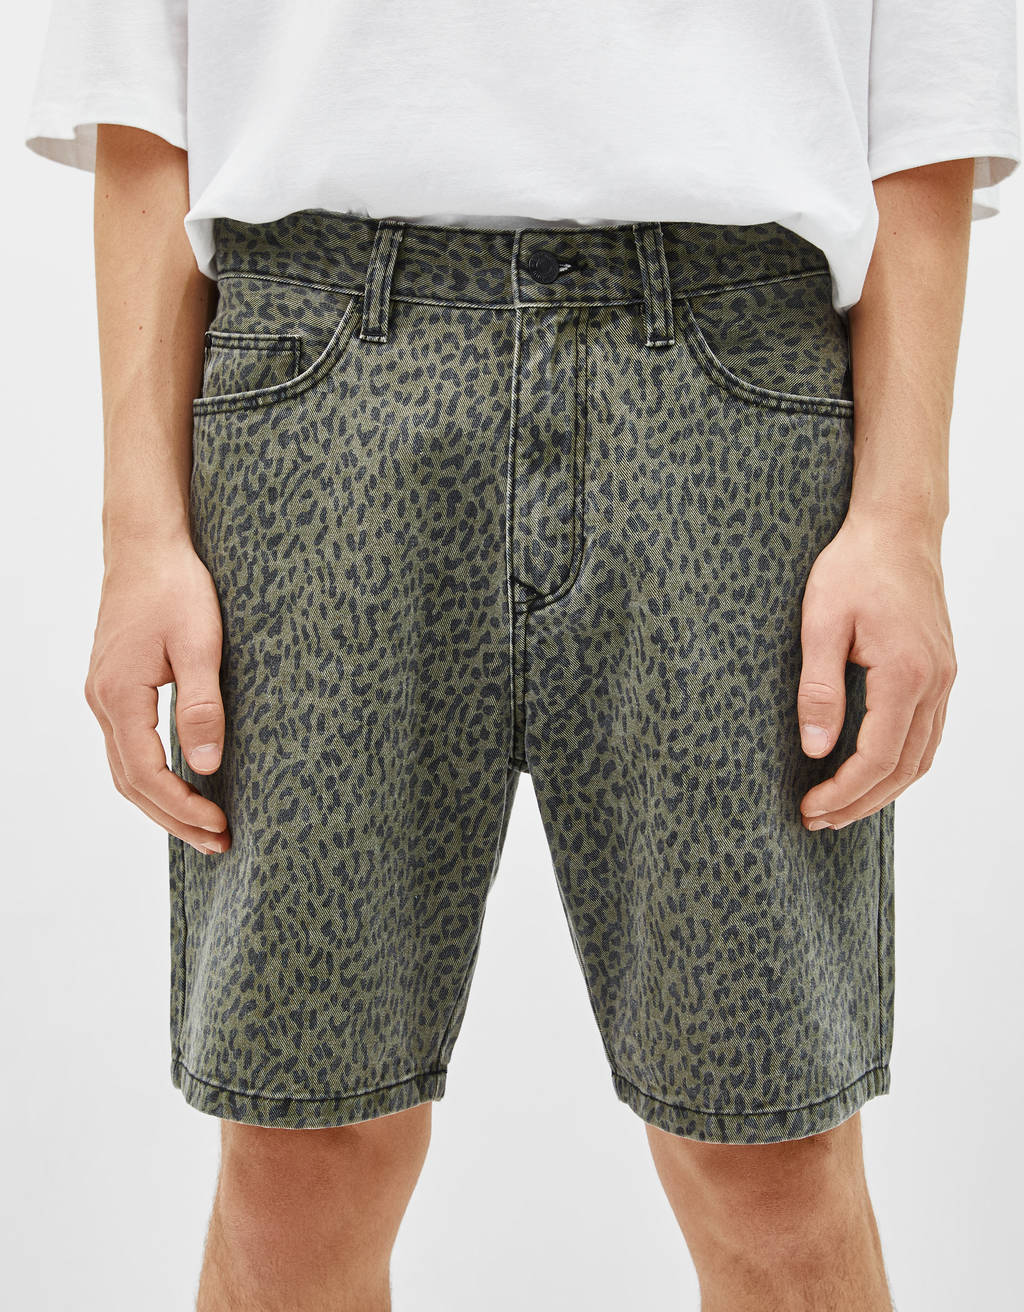 Bermudashorts i dad fit med dyreprint